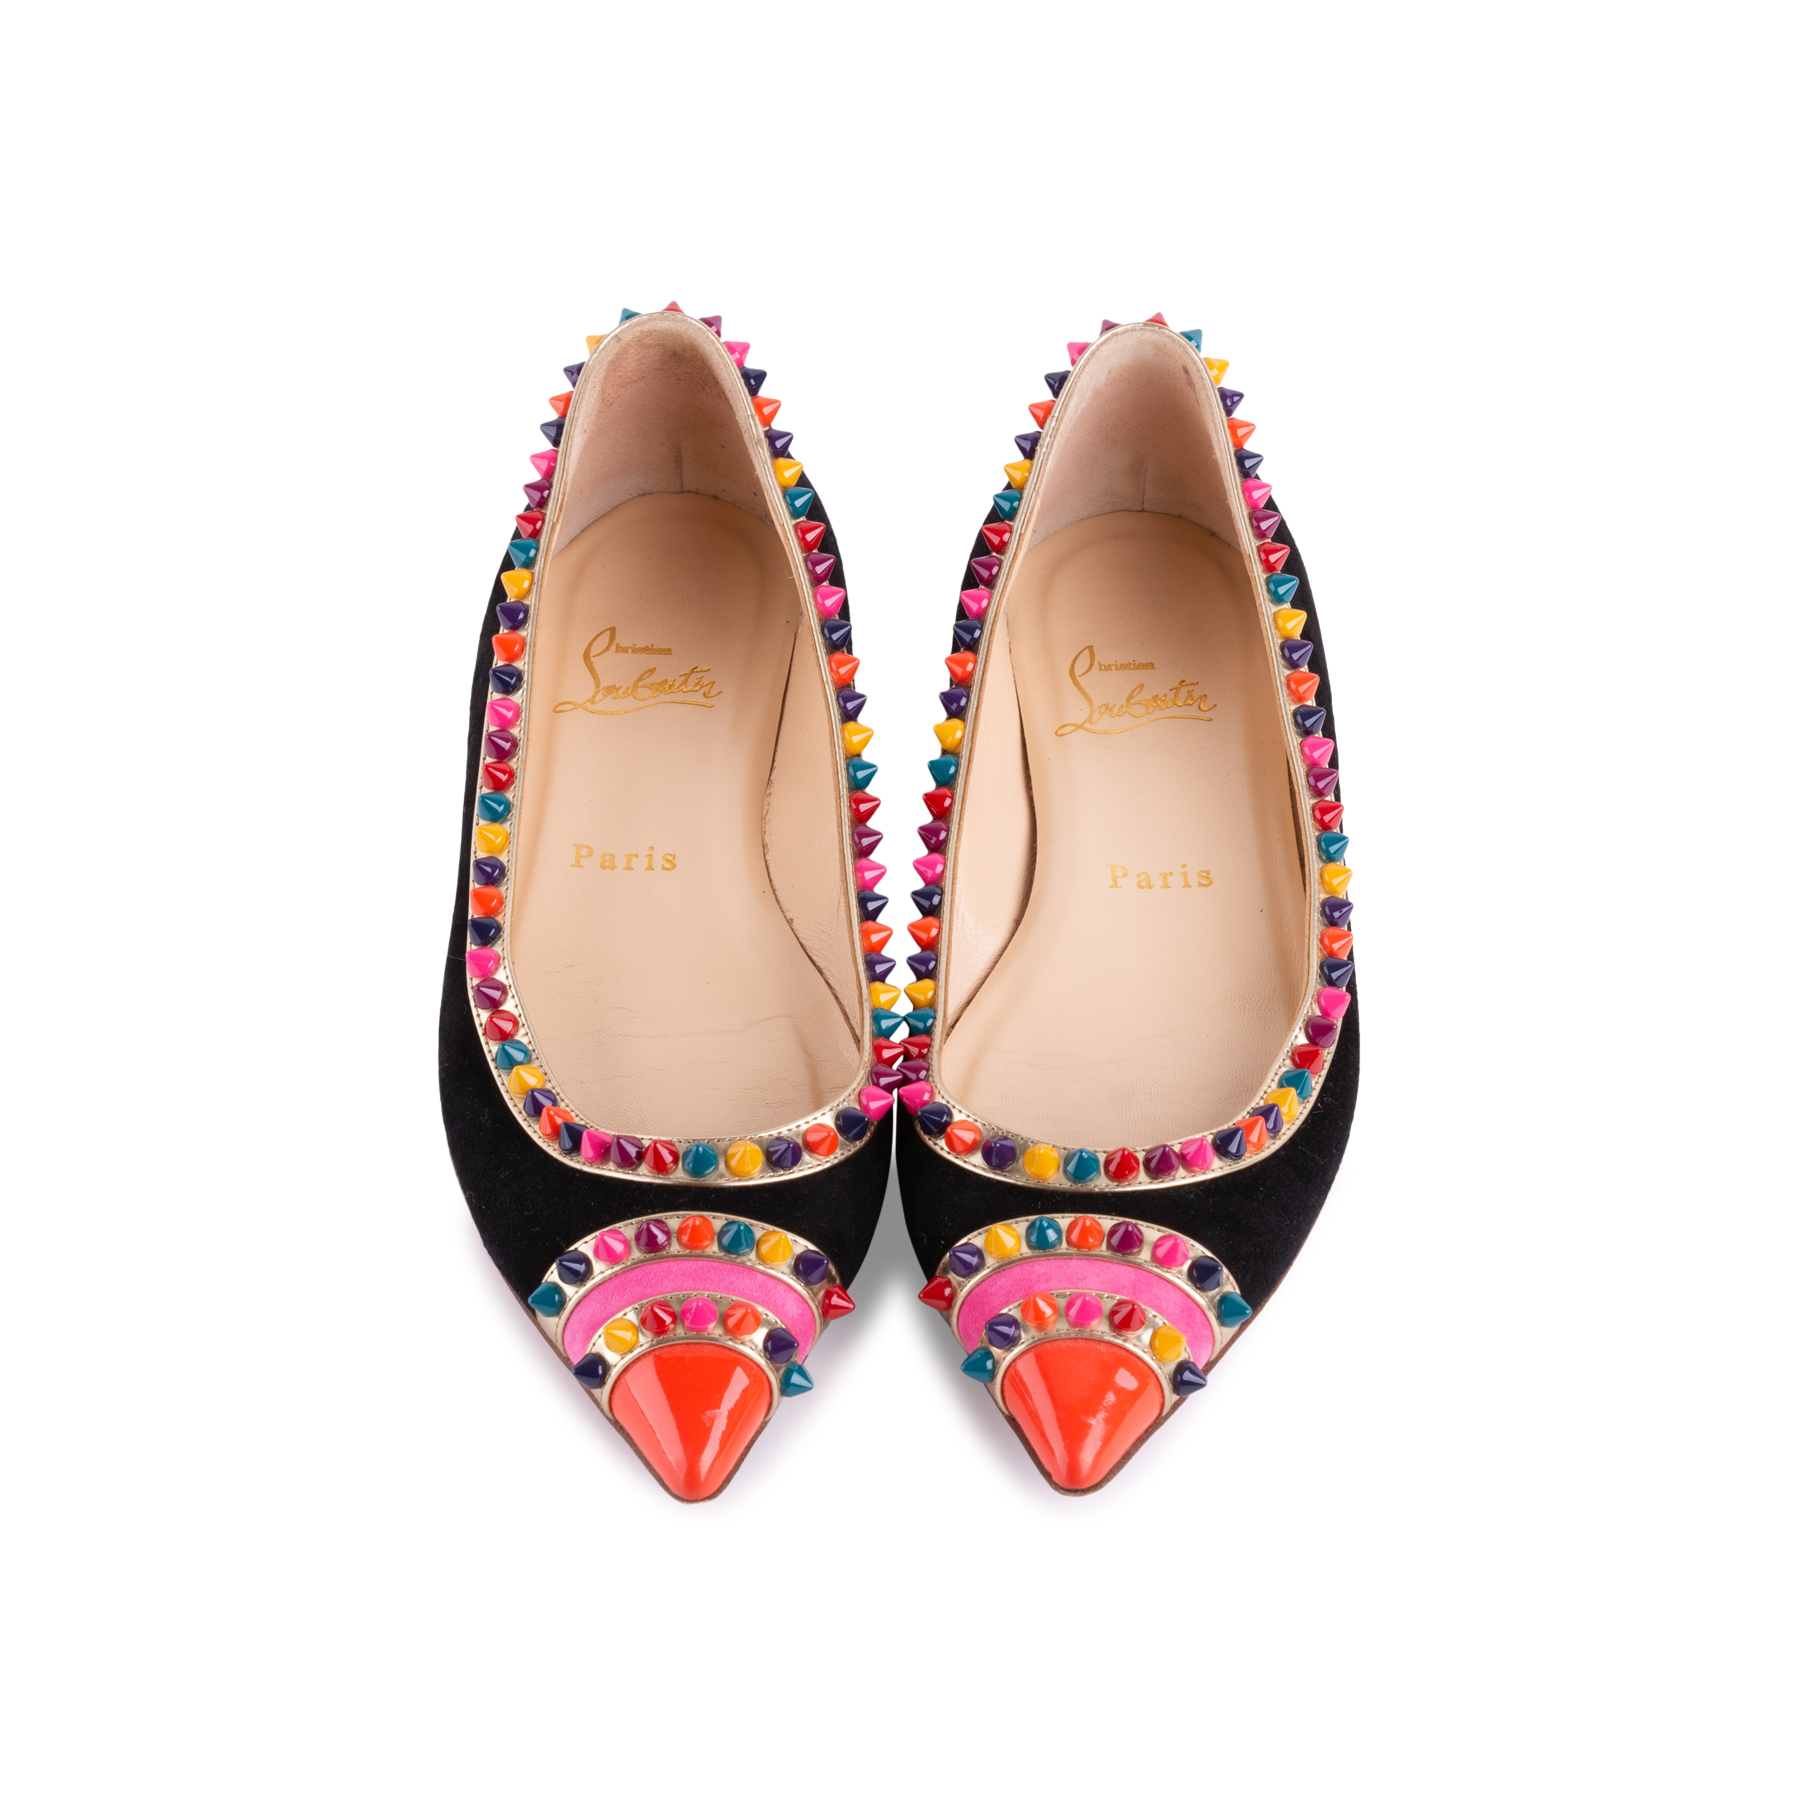 23ae2fac3af Authentic Second Hand Christian Louboutin Malabar Spike Flats  (PSS-607-00003)